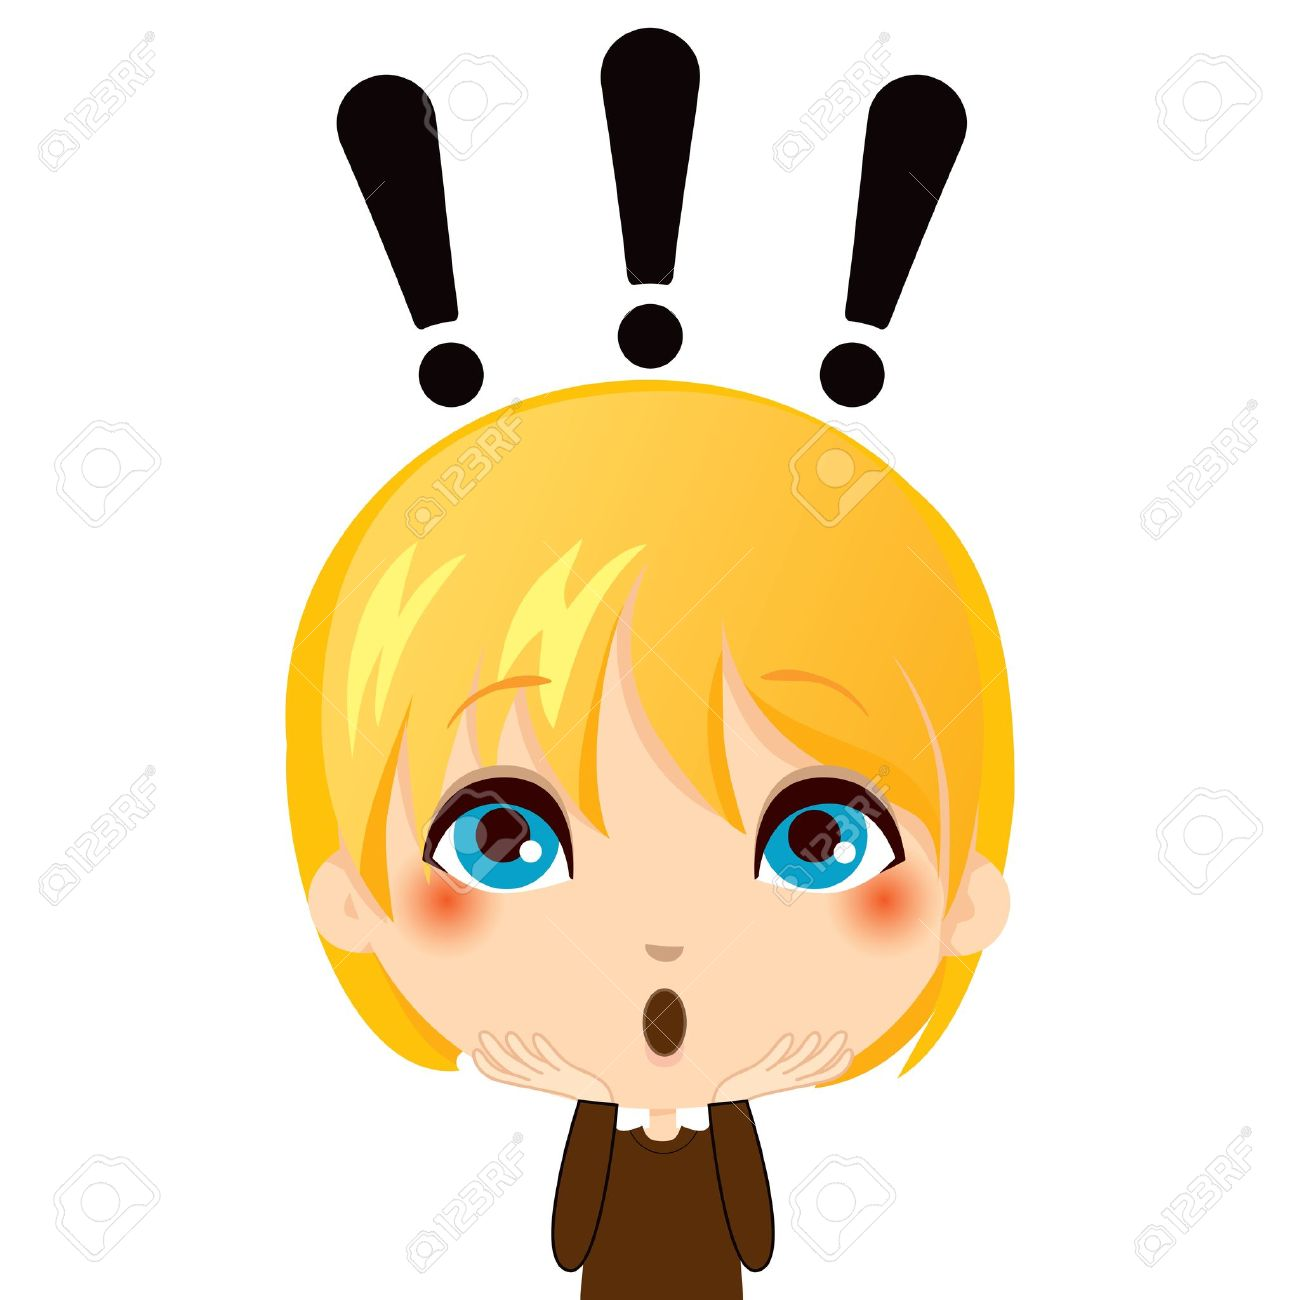 12 388 surprised face stock vector illustration and royalty free rh 123rf com Surprised Woman Clip Art Surprised Woman Clip Art